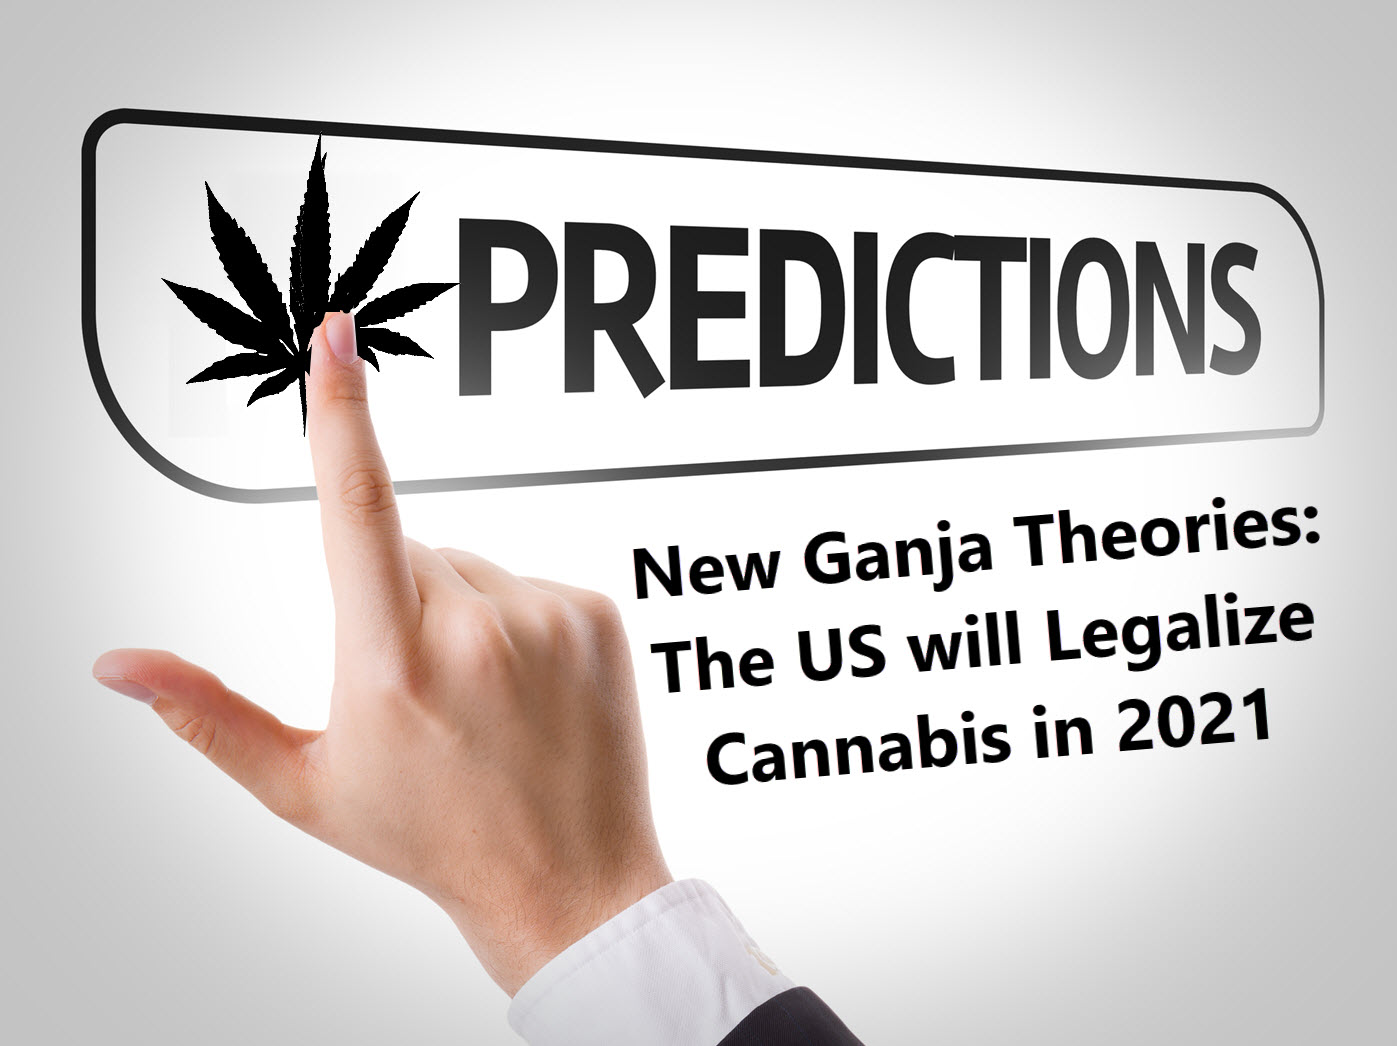 New Ganja Theories: The US will Legalize Cannabis in 2021?